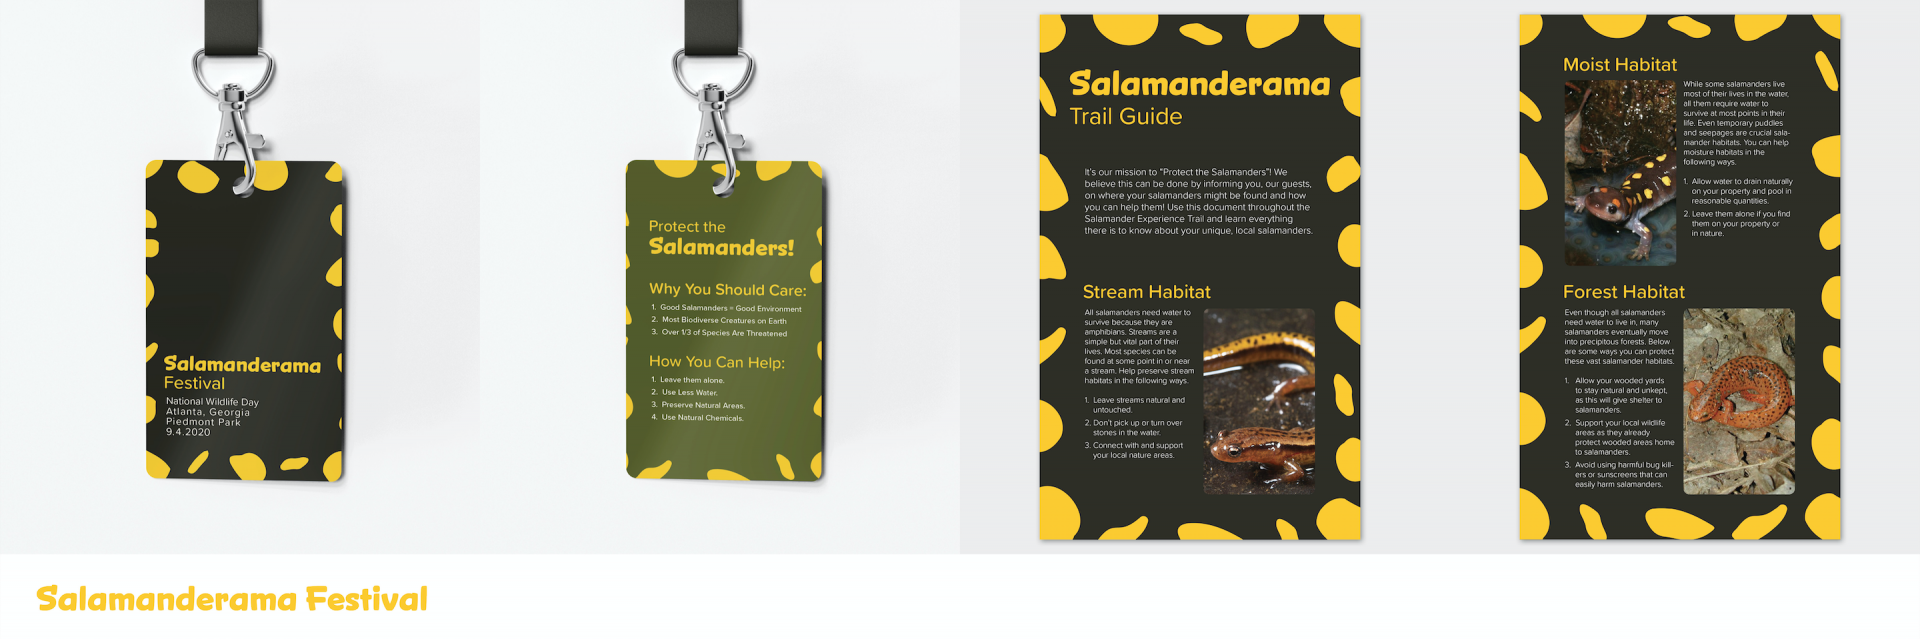 Several photos of laniard card and a info sheet about the salamander festival.